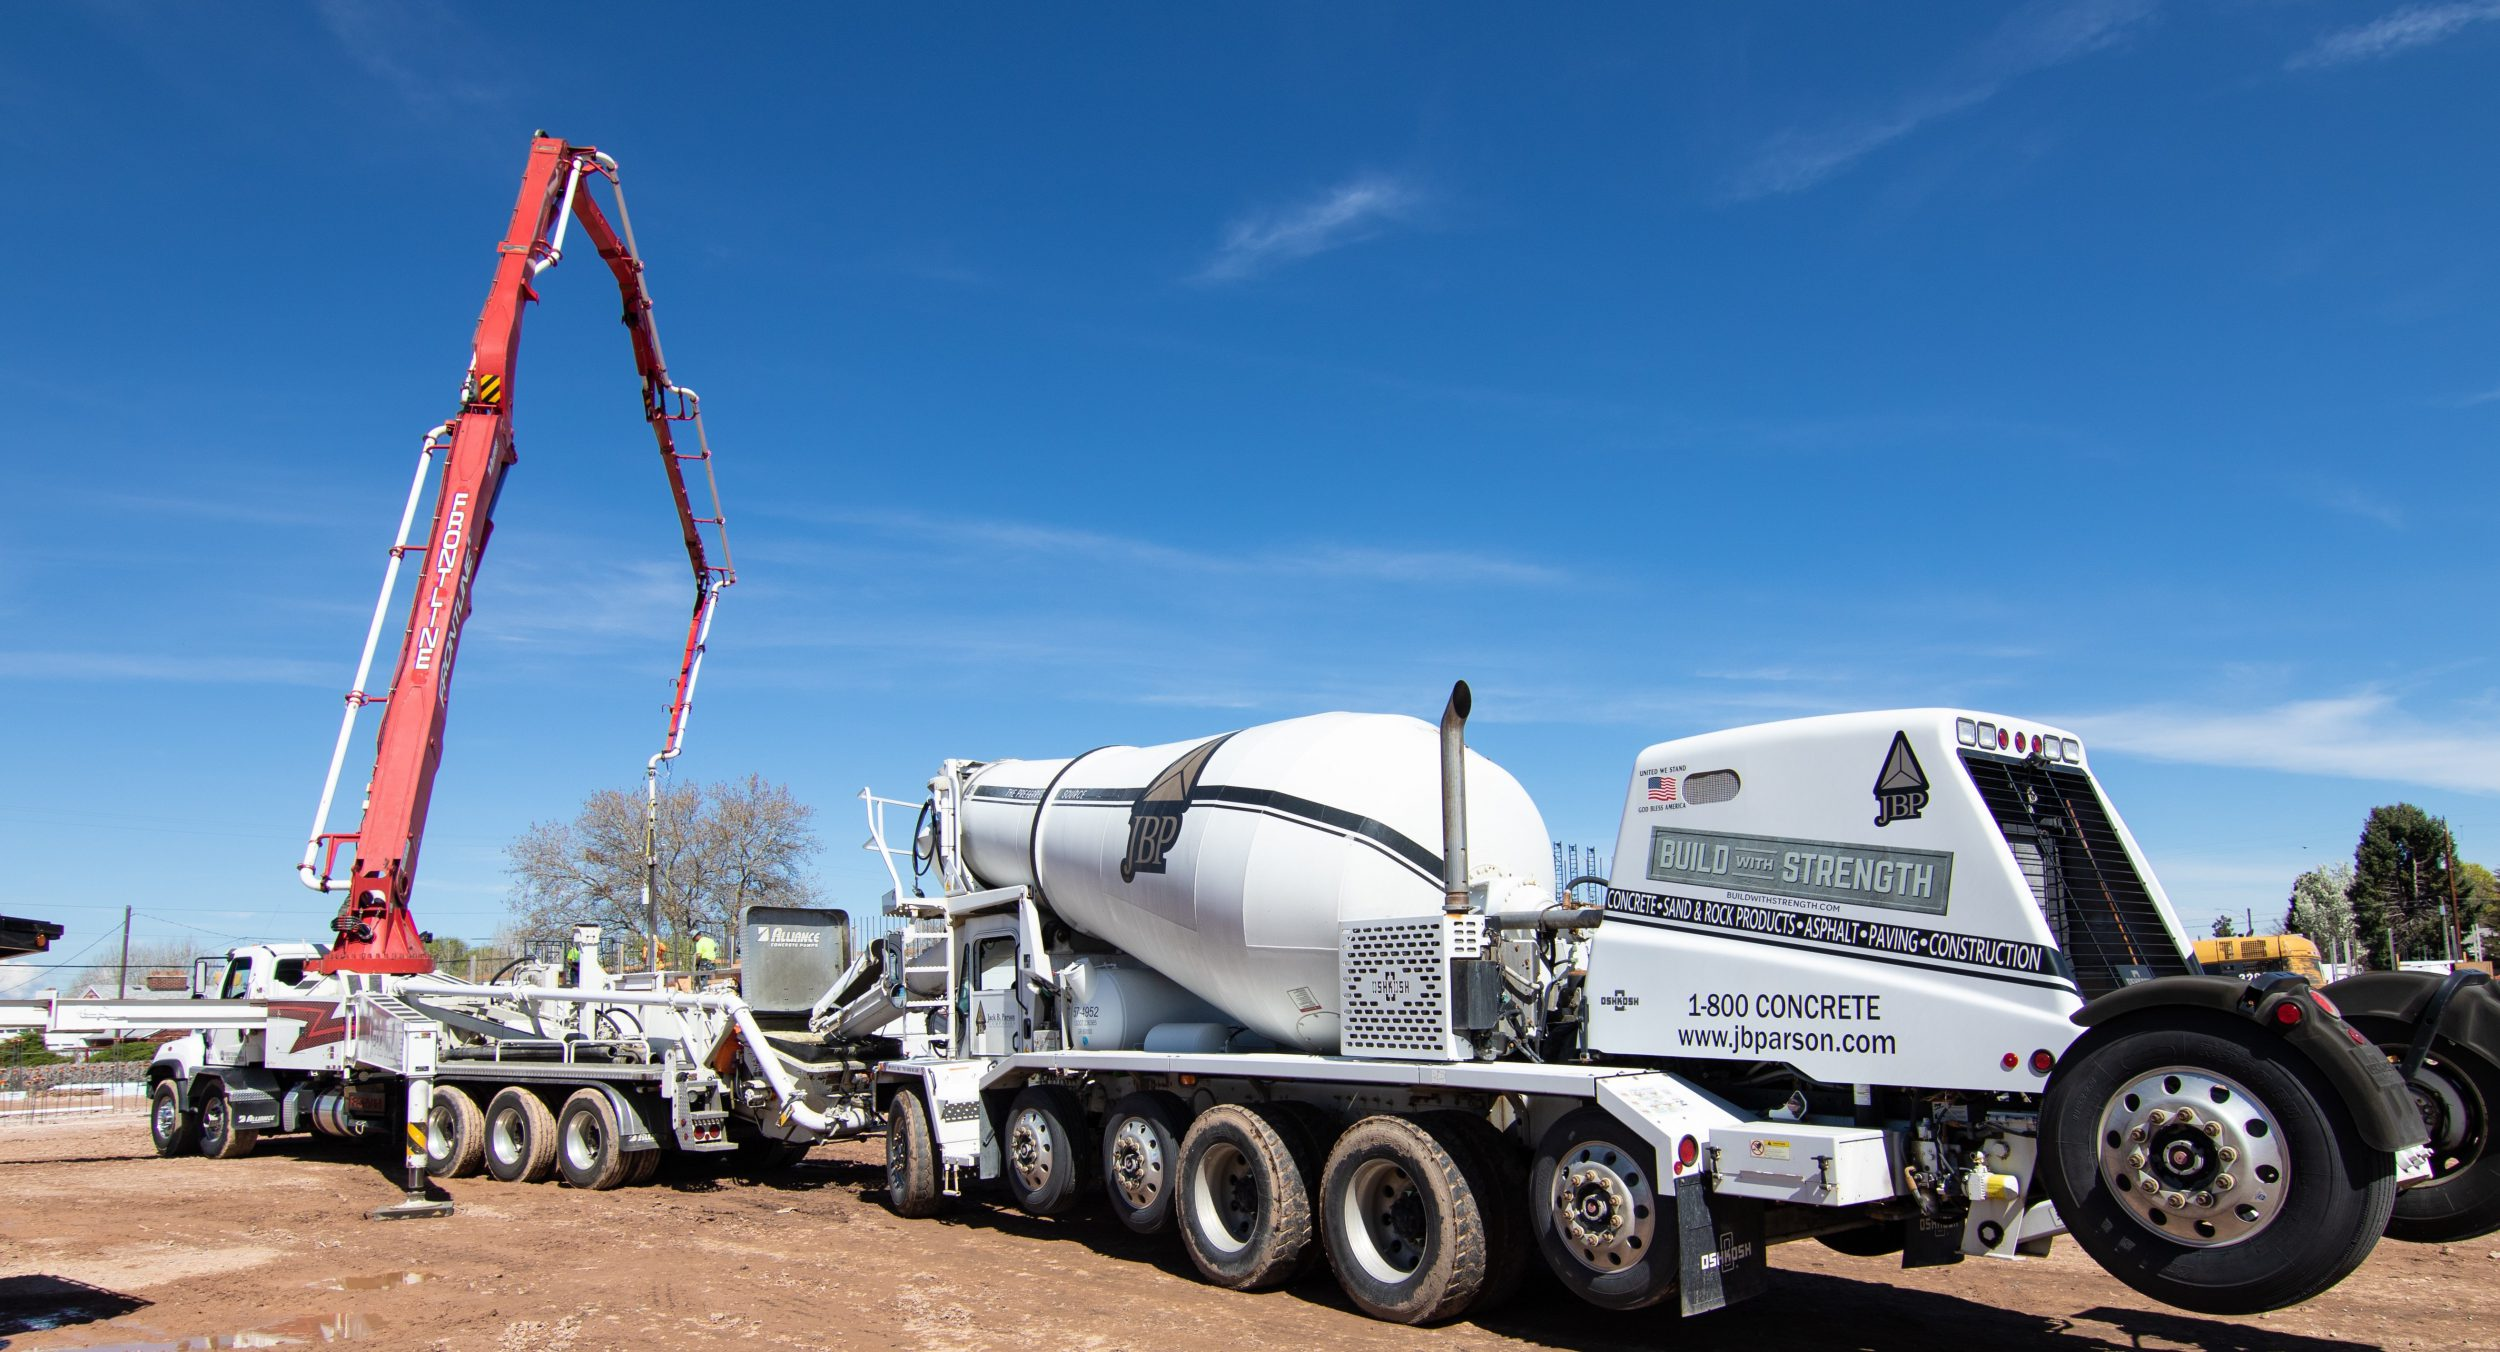 The image is a picture of a Staker Parson concrete mixer at the new Roy High School- 1-800-CONCRETE